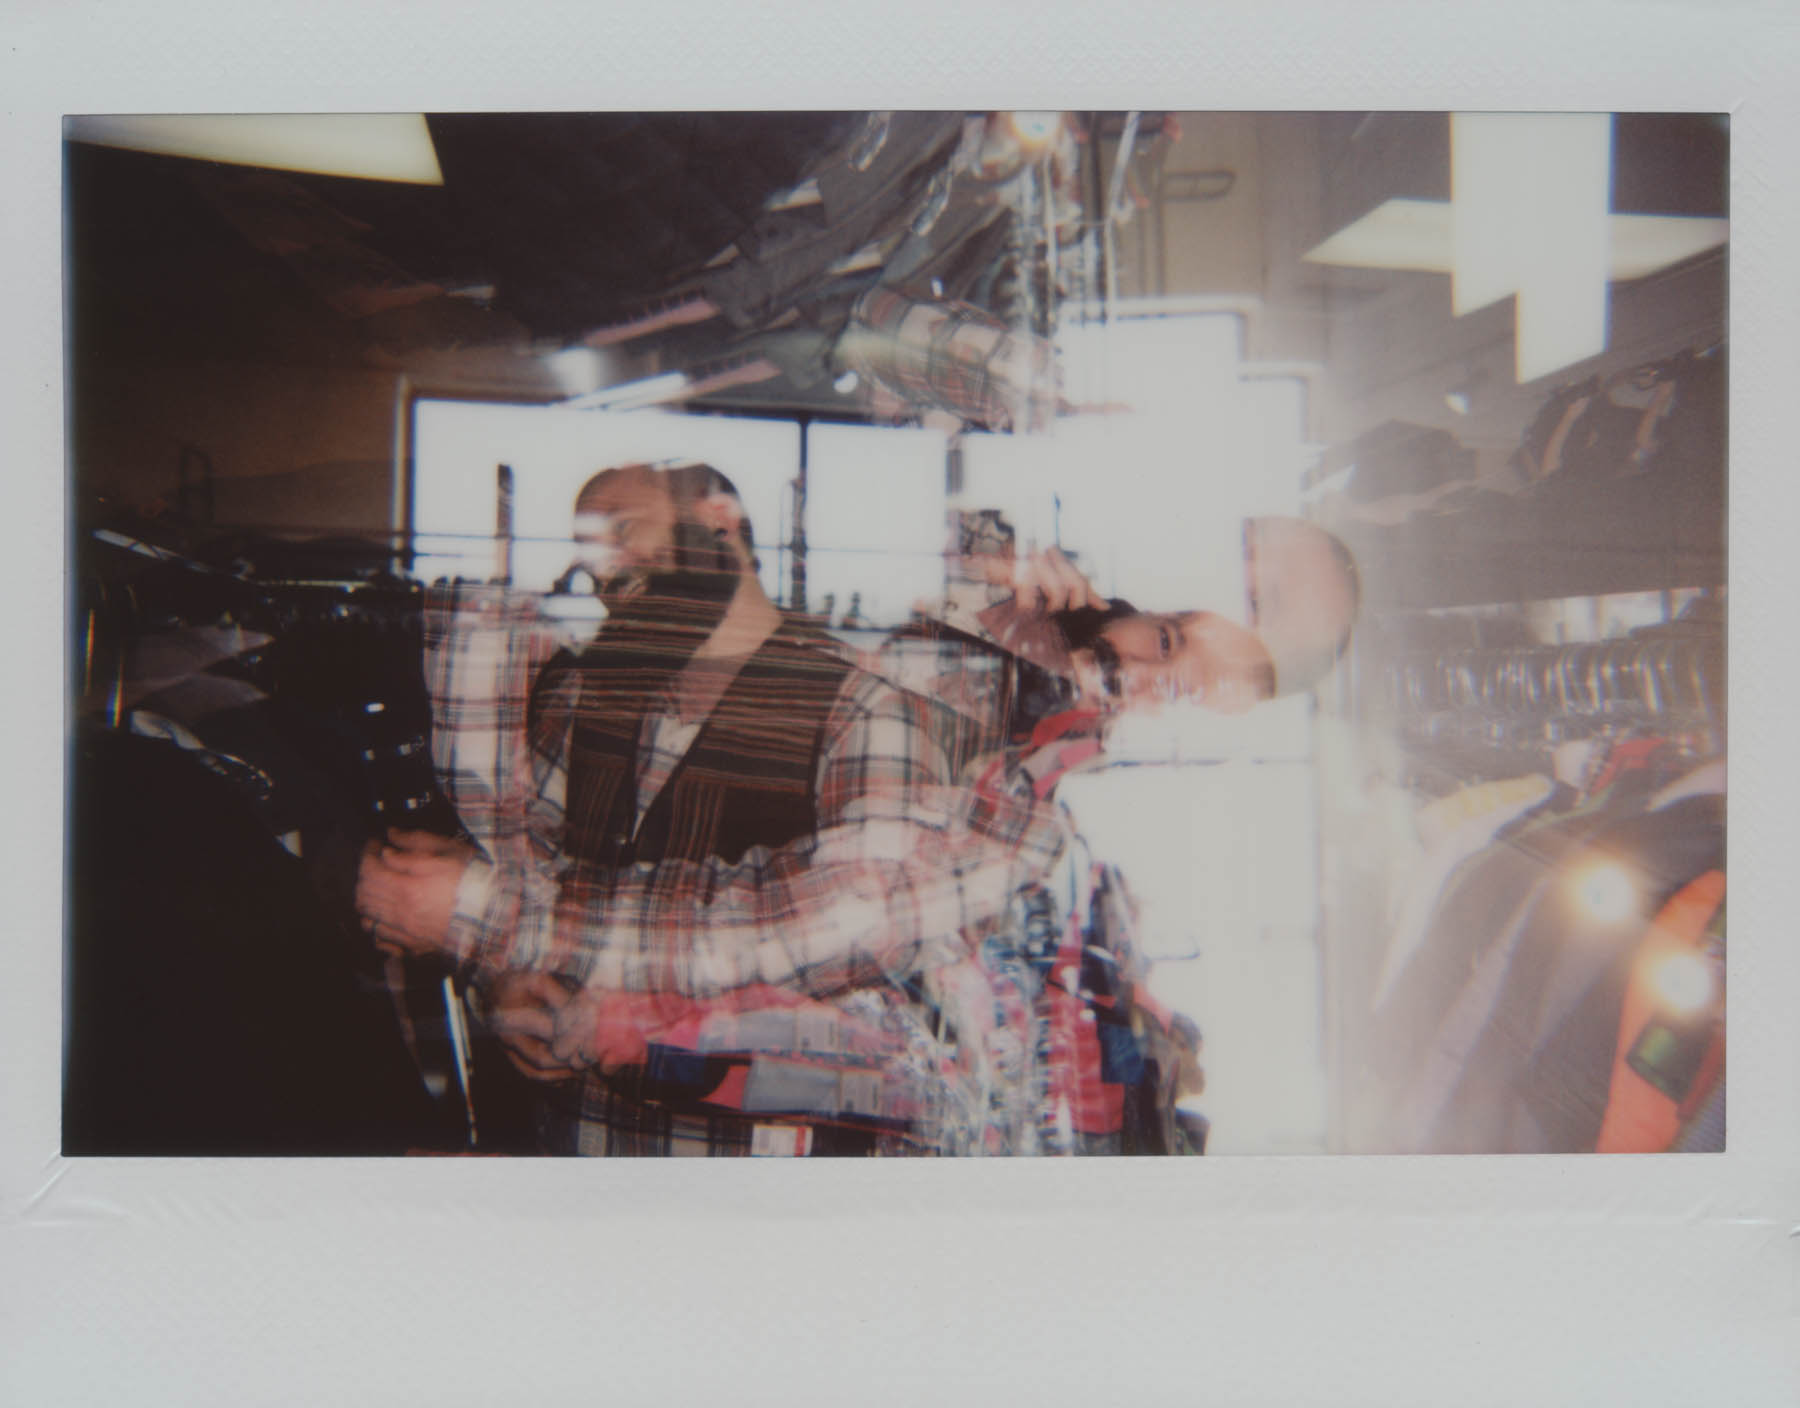 Thrift Store Confusion | Lomo'Instant Wide | Instax Wide | Gina Gorsek